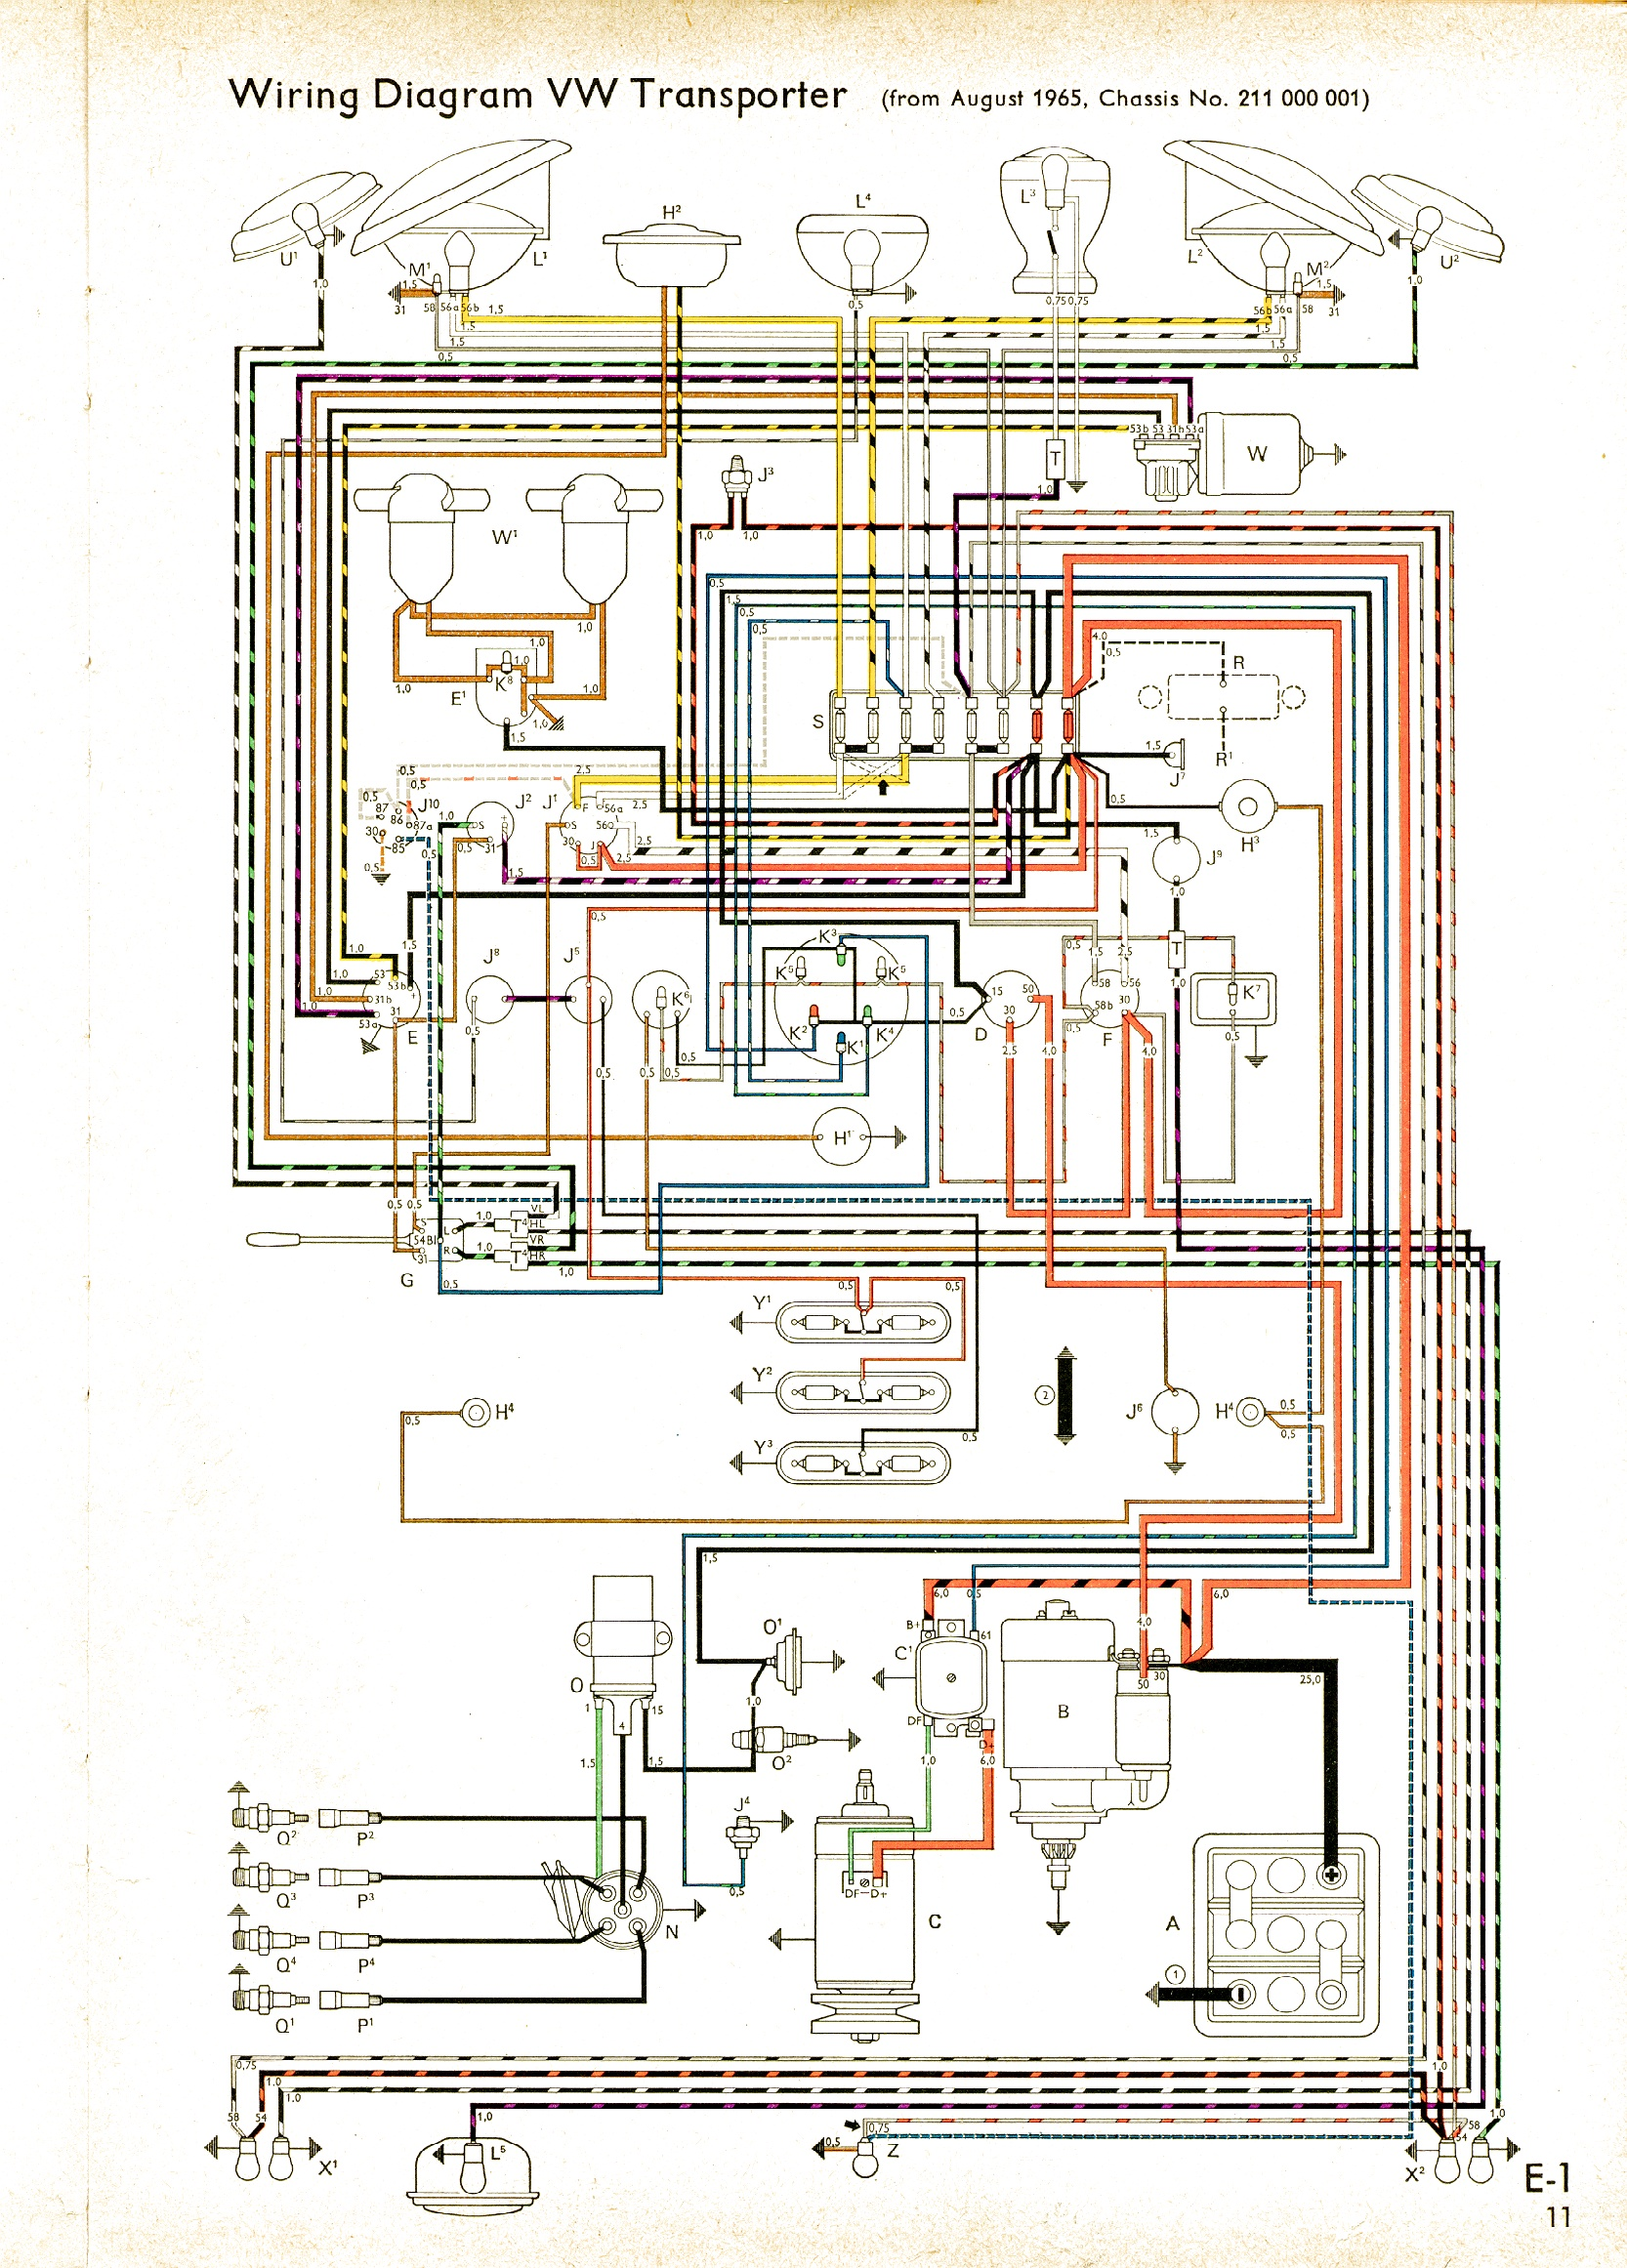 1967 vw beetle wiring diagram RIDAwNe 1967 vw bug wiring diagram on 1967 download wirning diagrams 1970 vw bug wiring diagram at bayanpartner.co